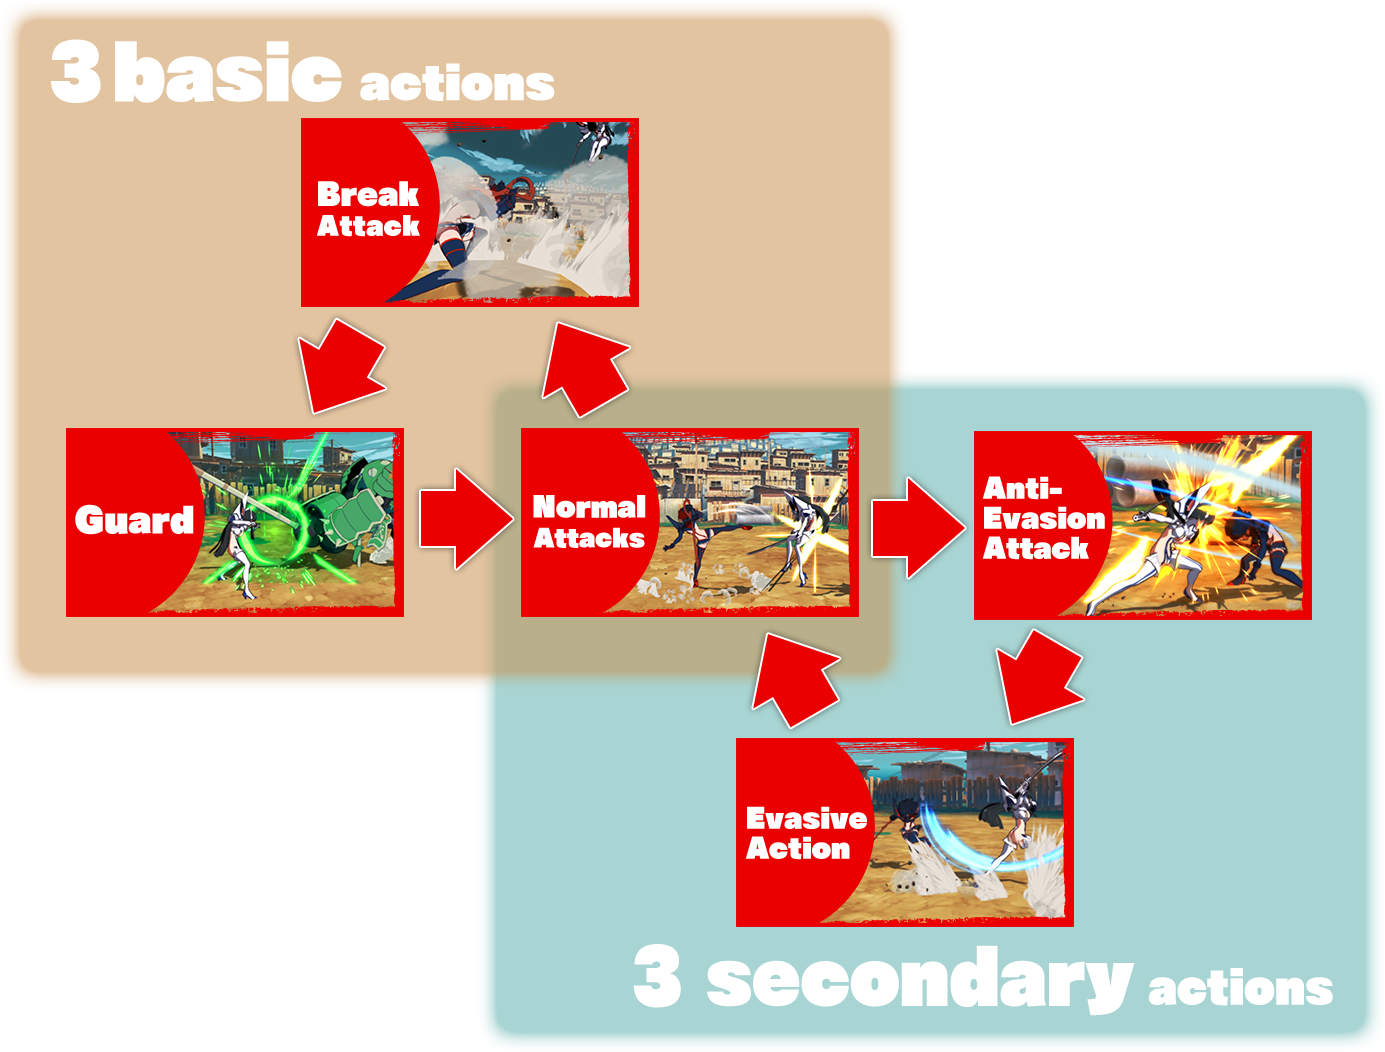 3 basic actions / 3 secondary actions